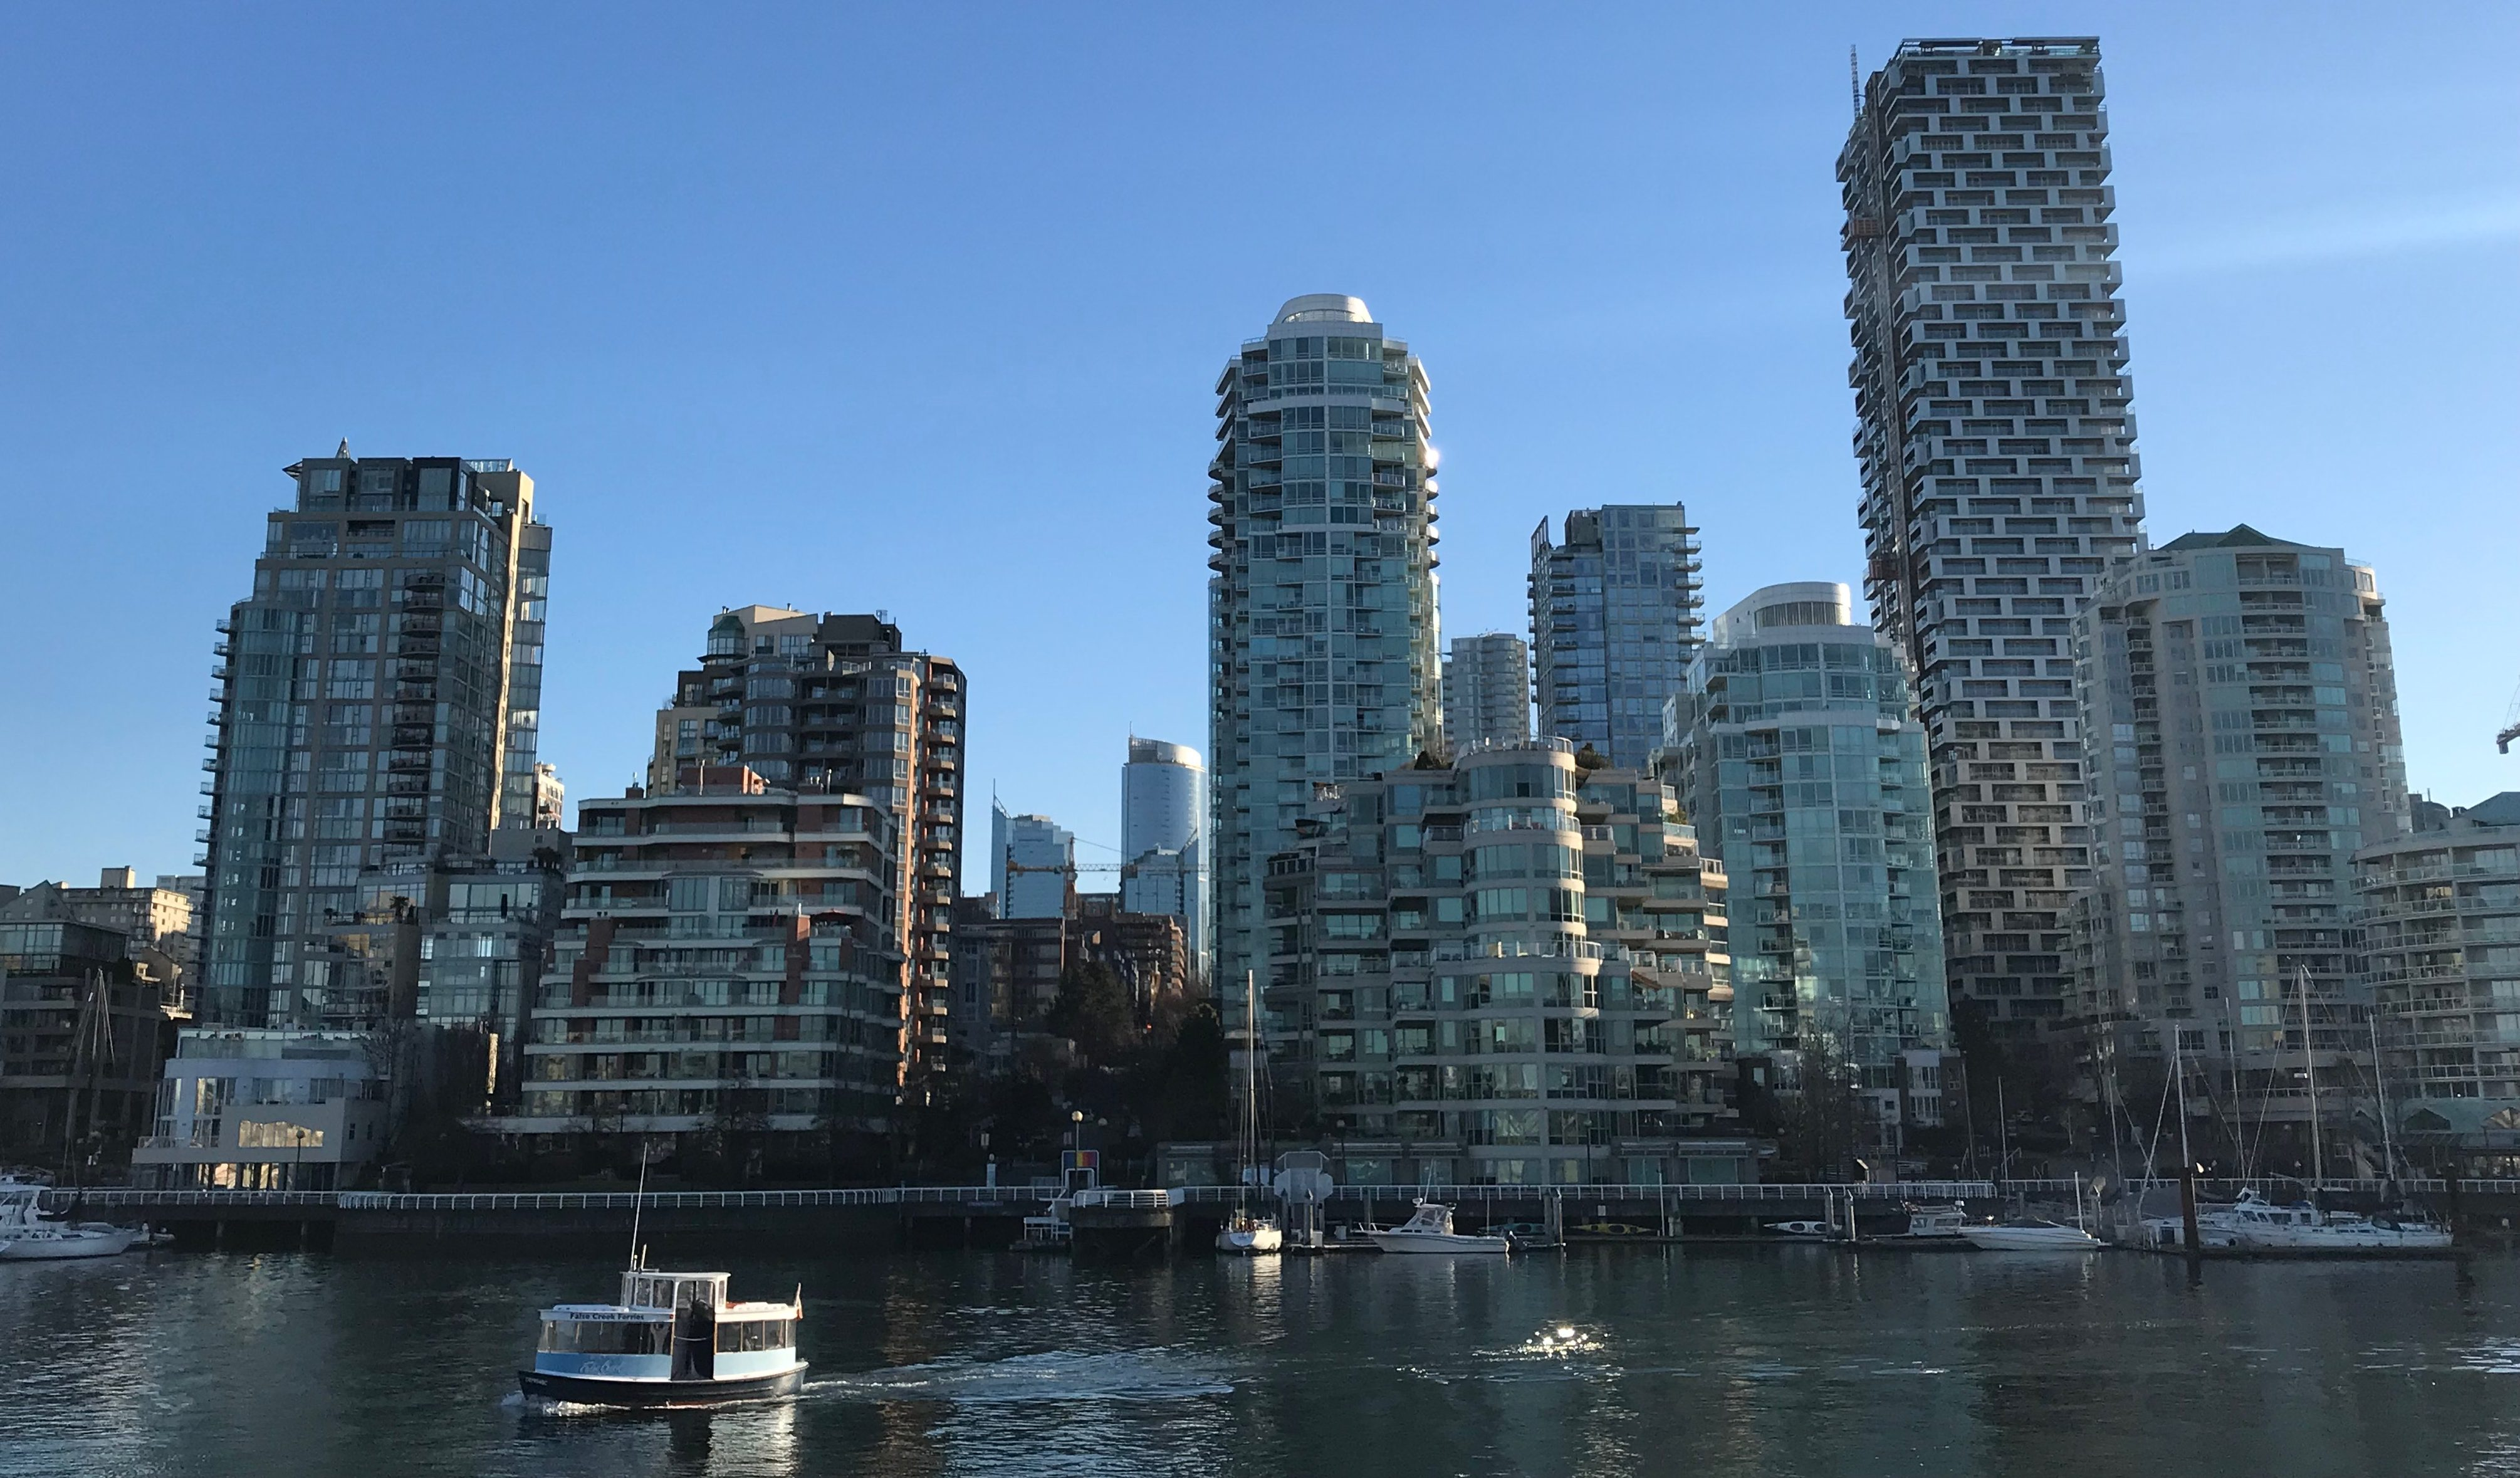 Metro Vancouver unicorn: GVBoT calls on feds to step in to address housing affordability